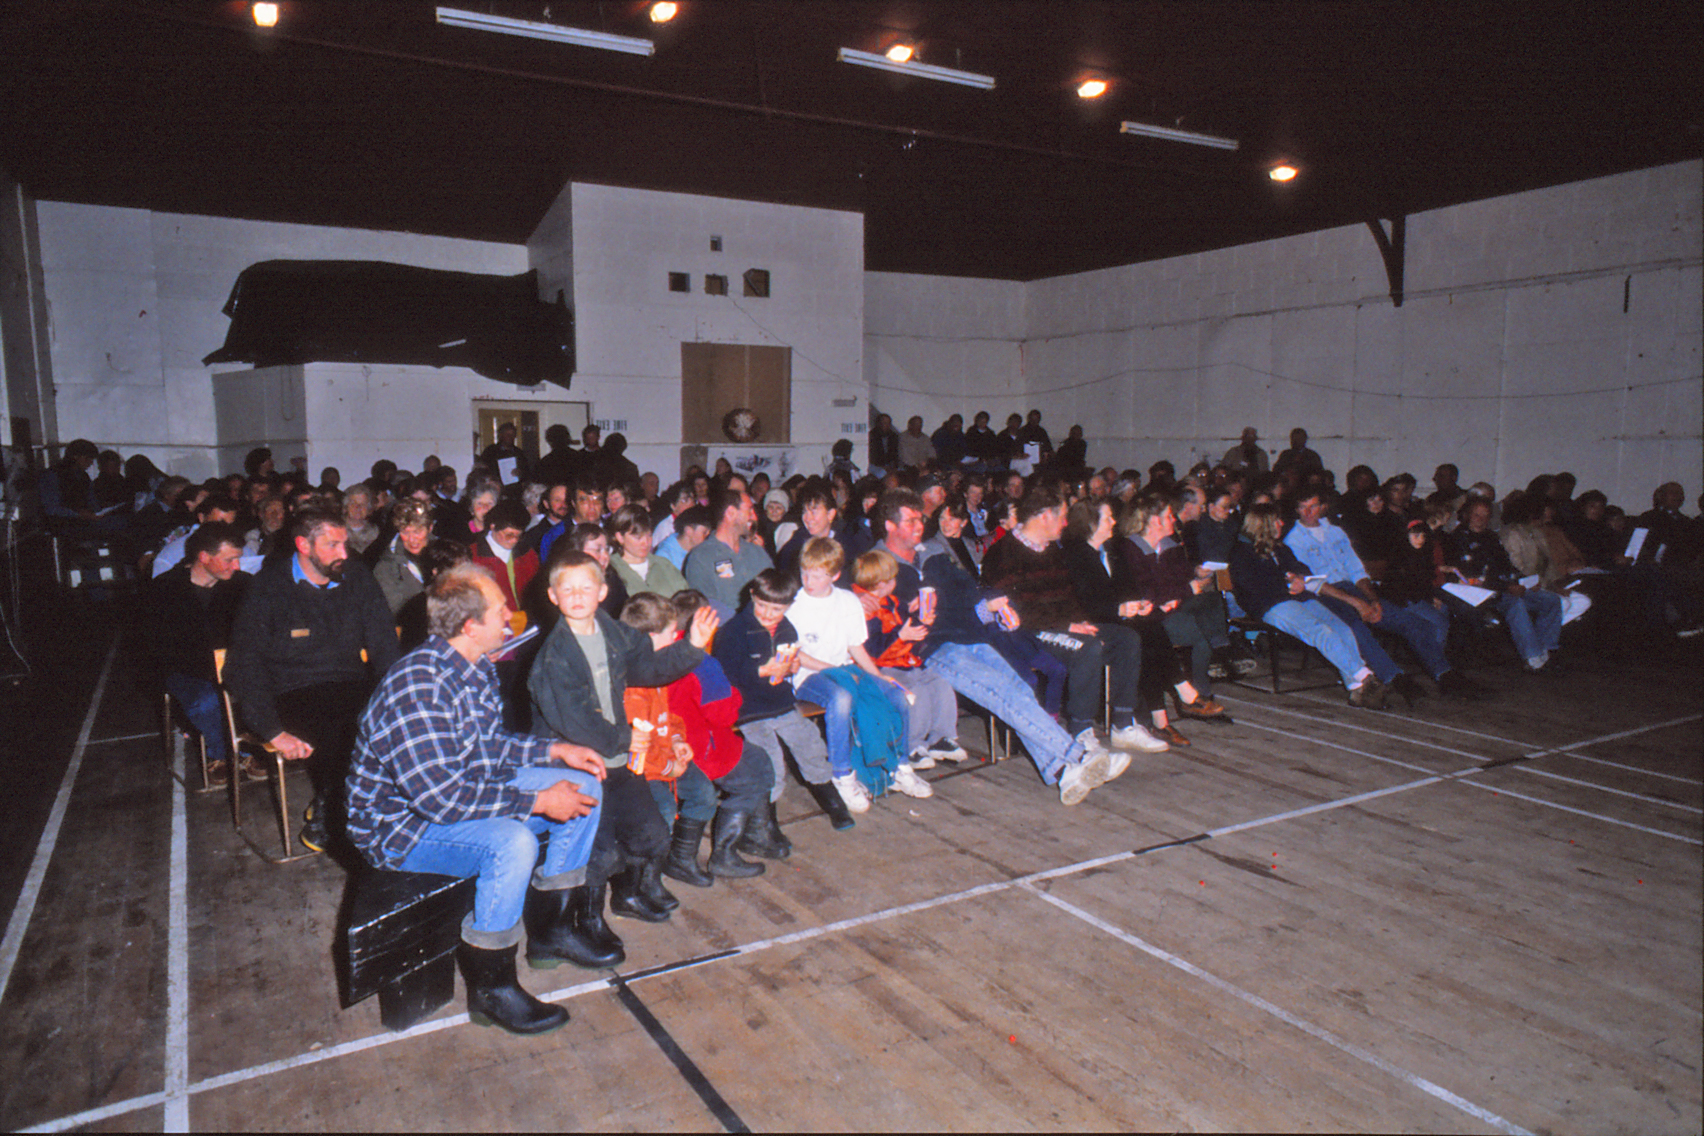 An audience waits for the movie to start in a hall in Southland